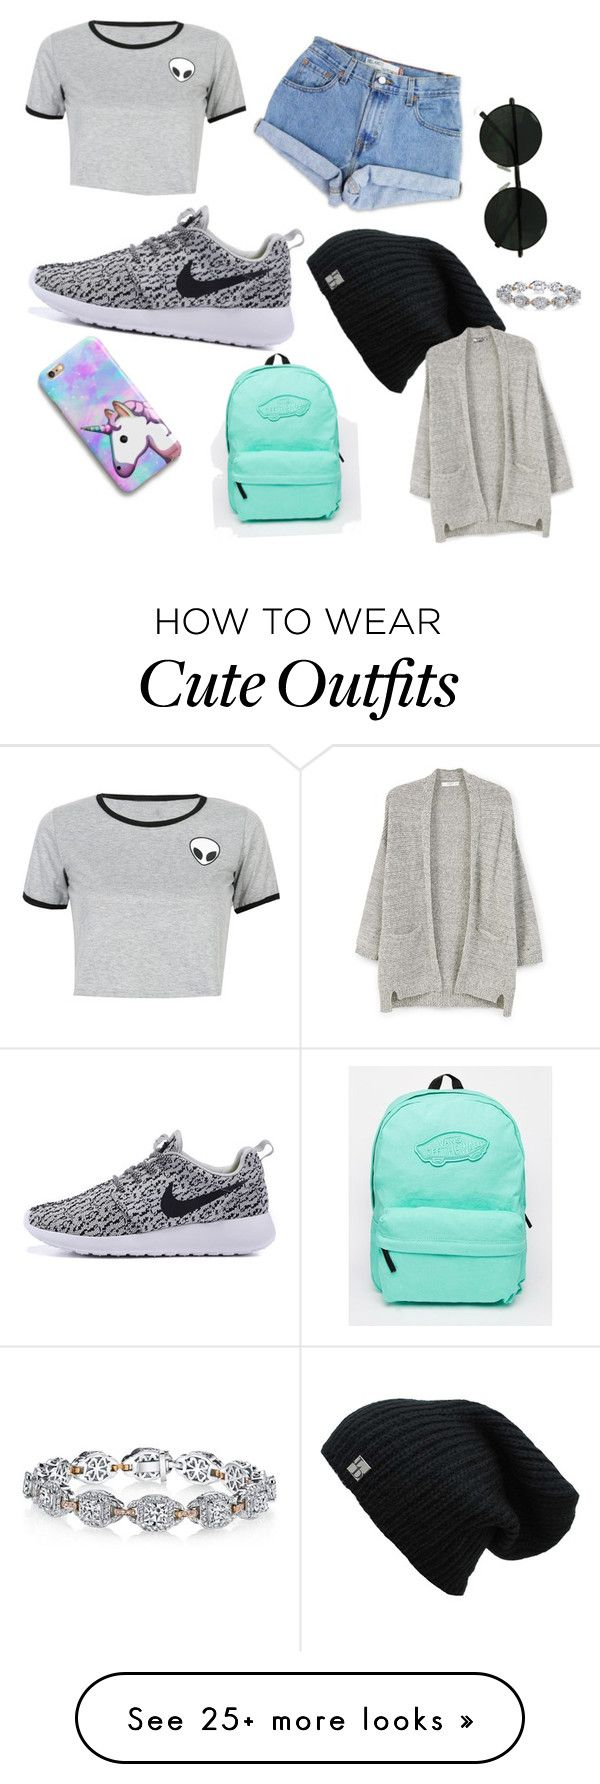 """""""Outfit day"""" by vickidure on Polyvore featuring WithChic, Levi's, Harry Kotlar, Vans and MANGO"""